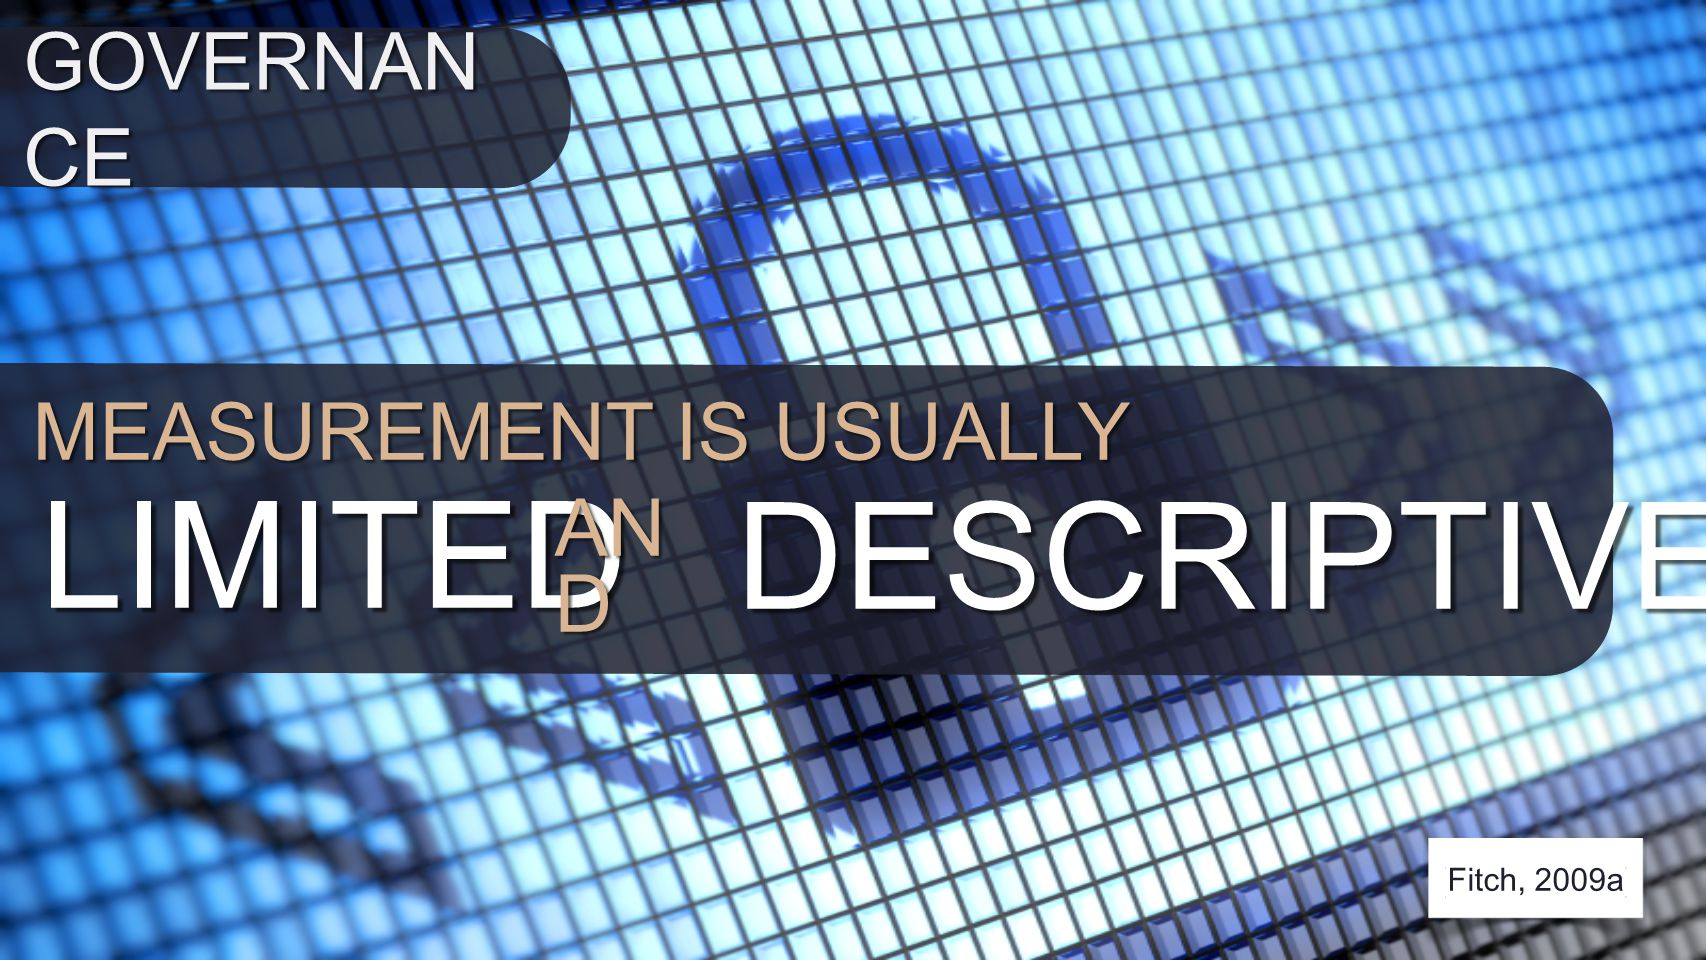 MEASUREMENT IS USUALLY LIMITED DESCRIPTIVE AN D (Fitch, 2009a) GOVERNAN CE